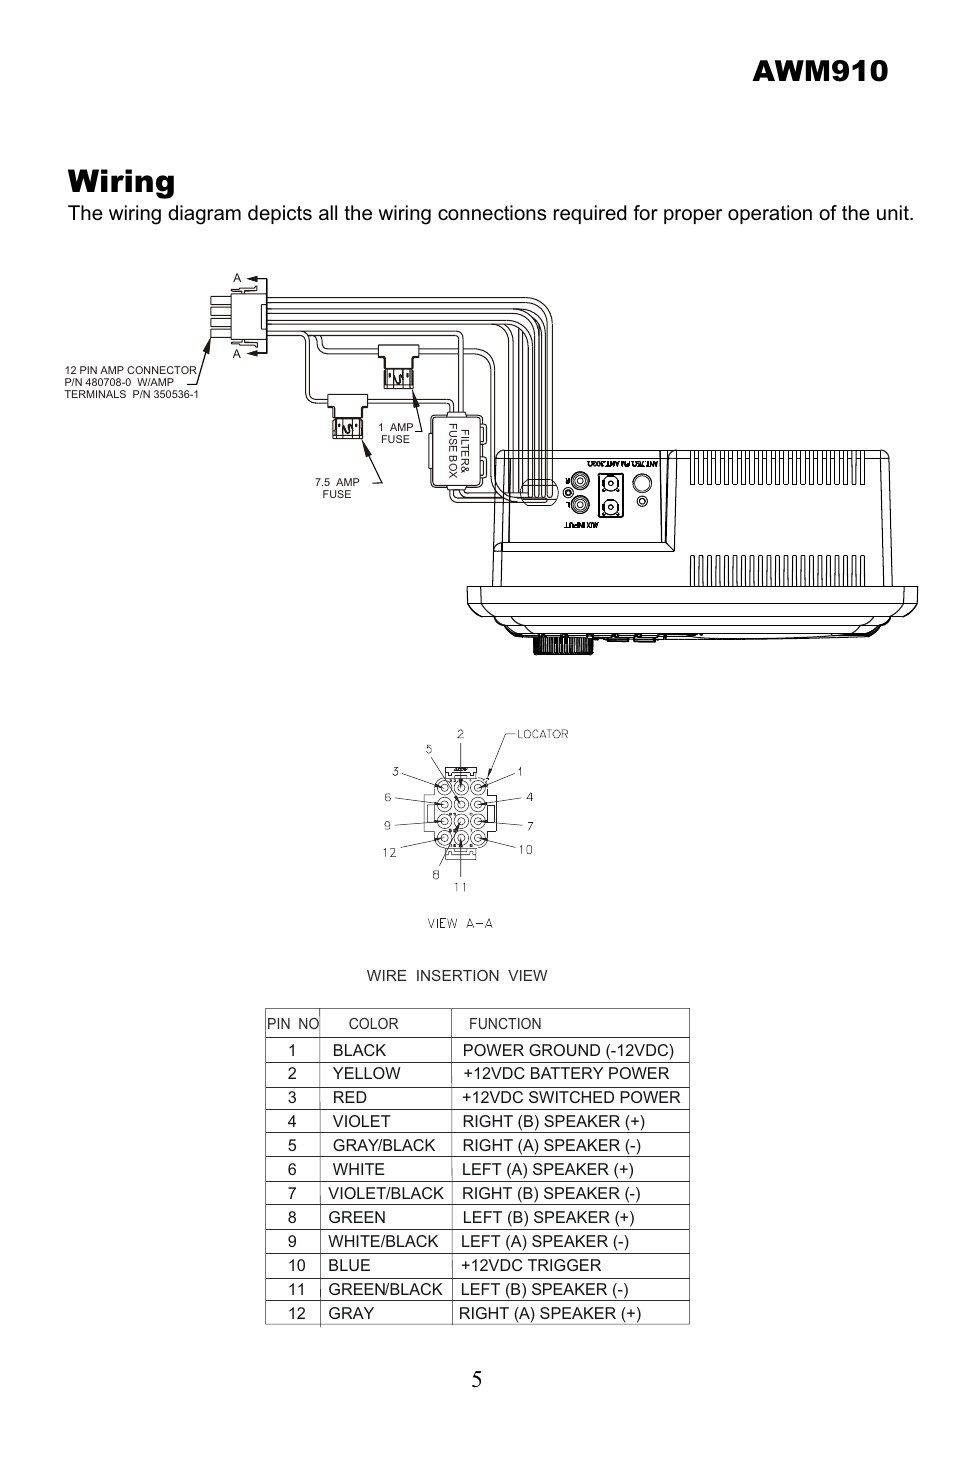 Vm9312 Wiring Diagram Page 2 And Schematics Jensen Harness For Silverado Awm910 User Manual 5 12 Rh Manuair Com Uv10